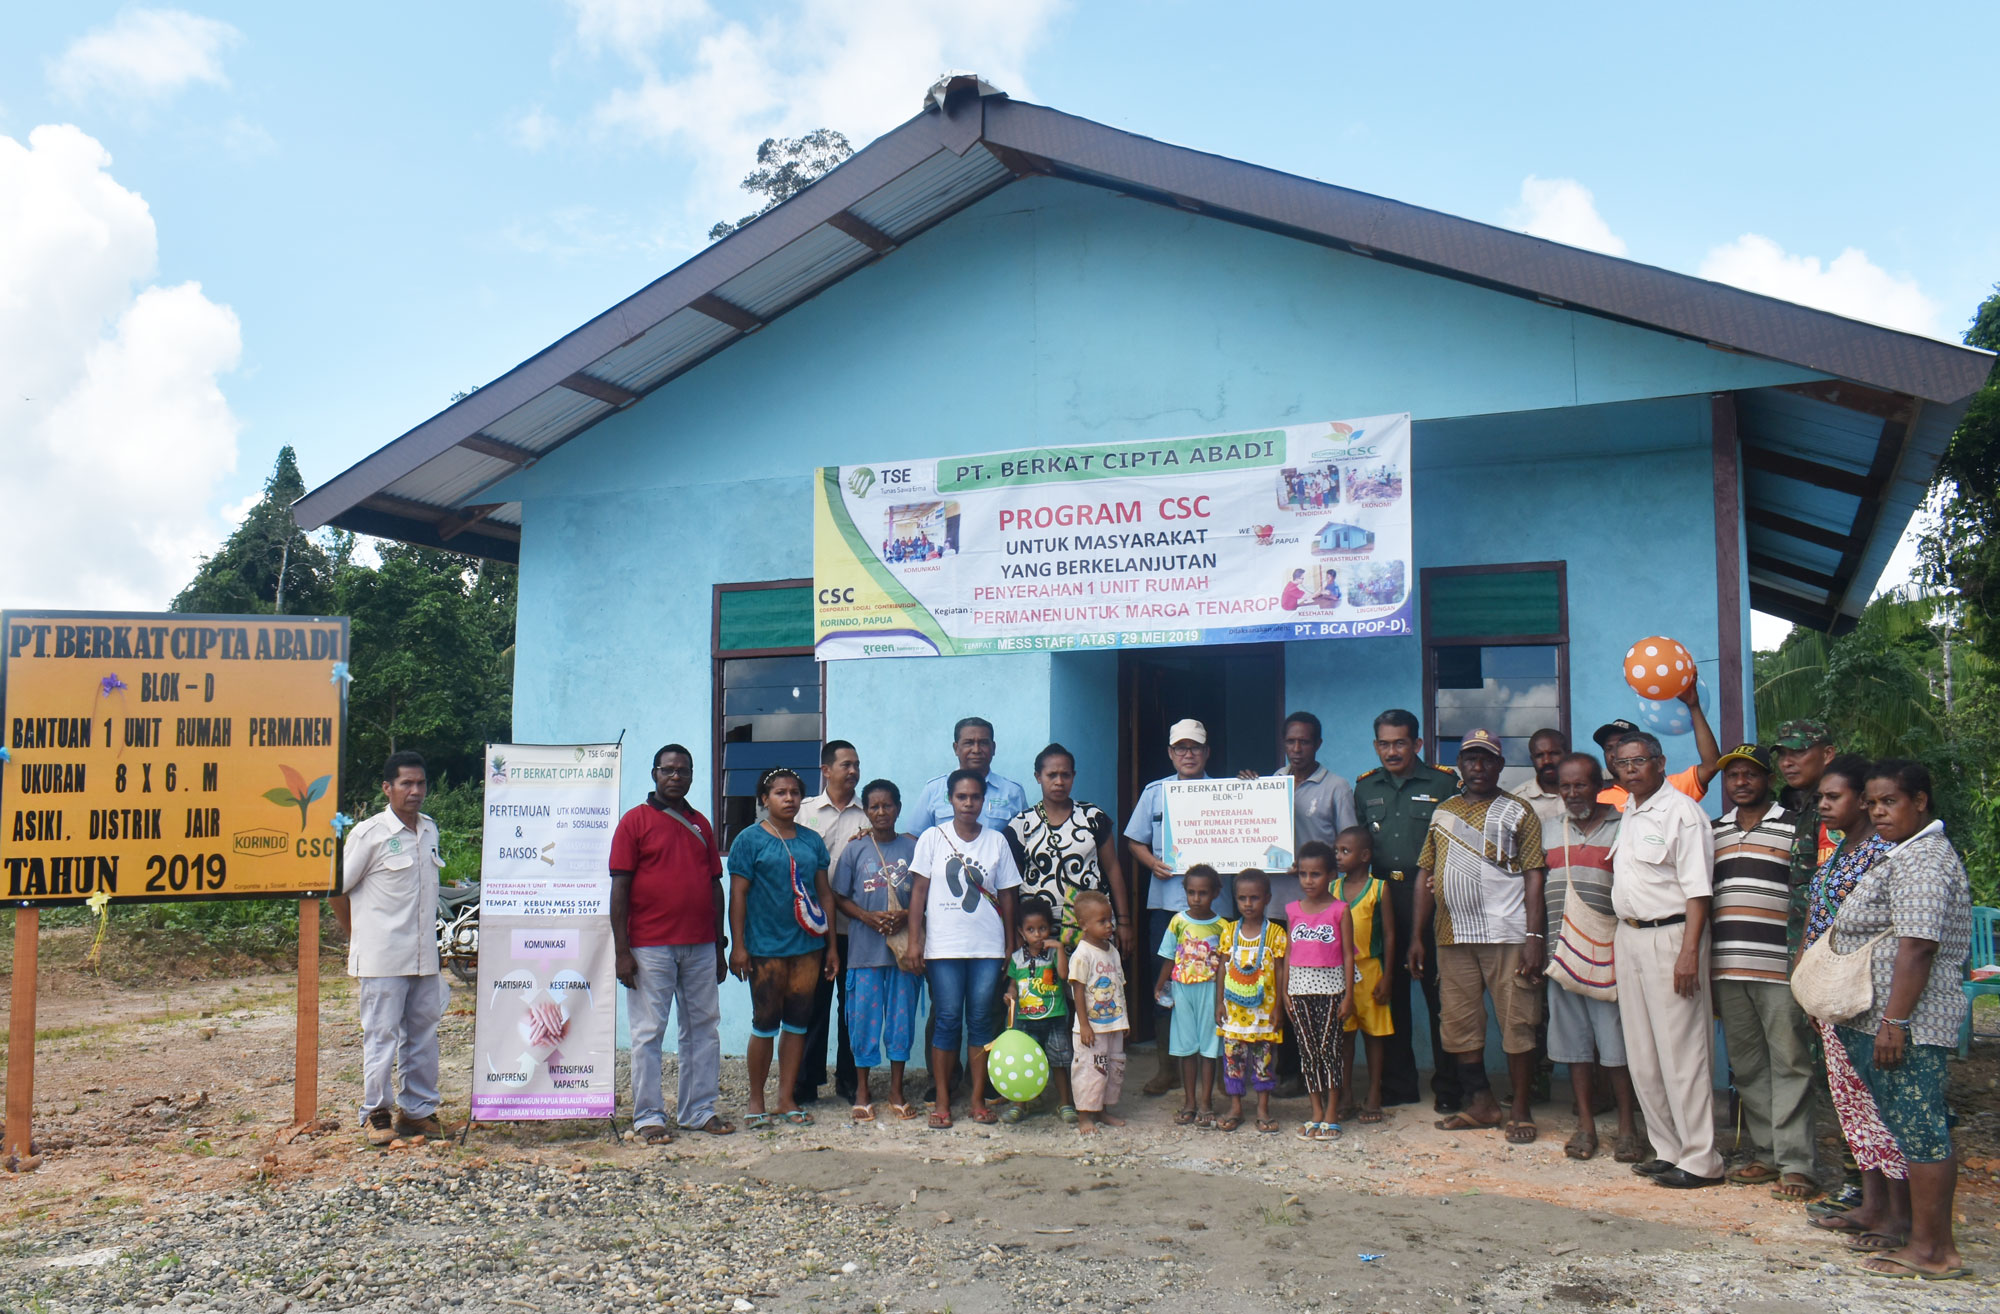 Korindo Papua CSC: From Health Counseling to Building Healthy Home for Community